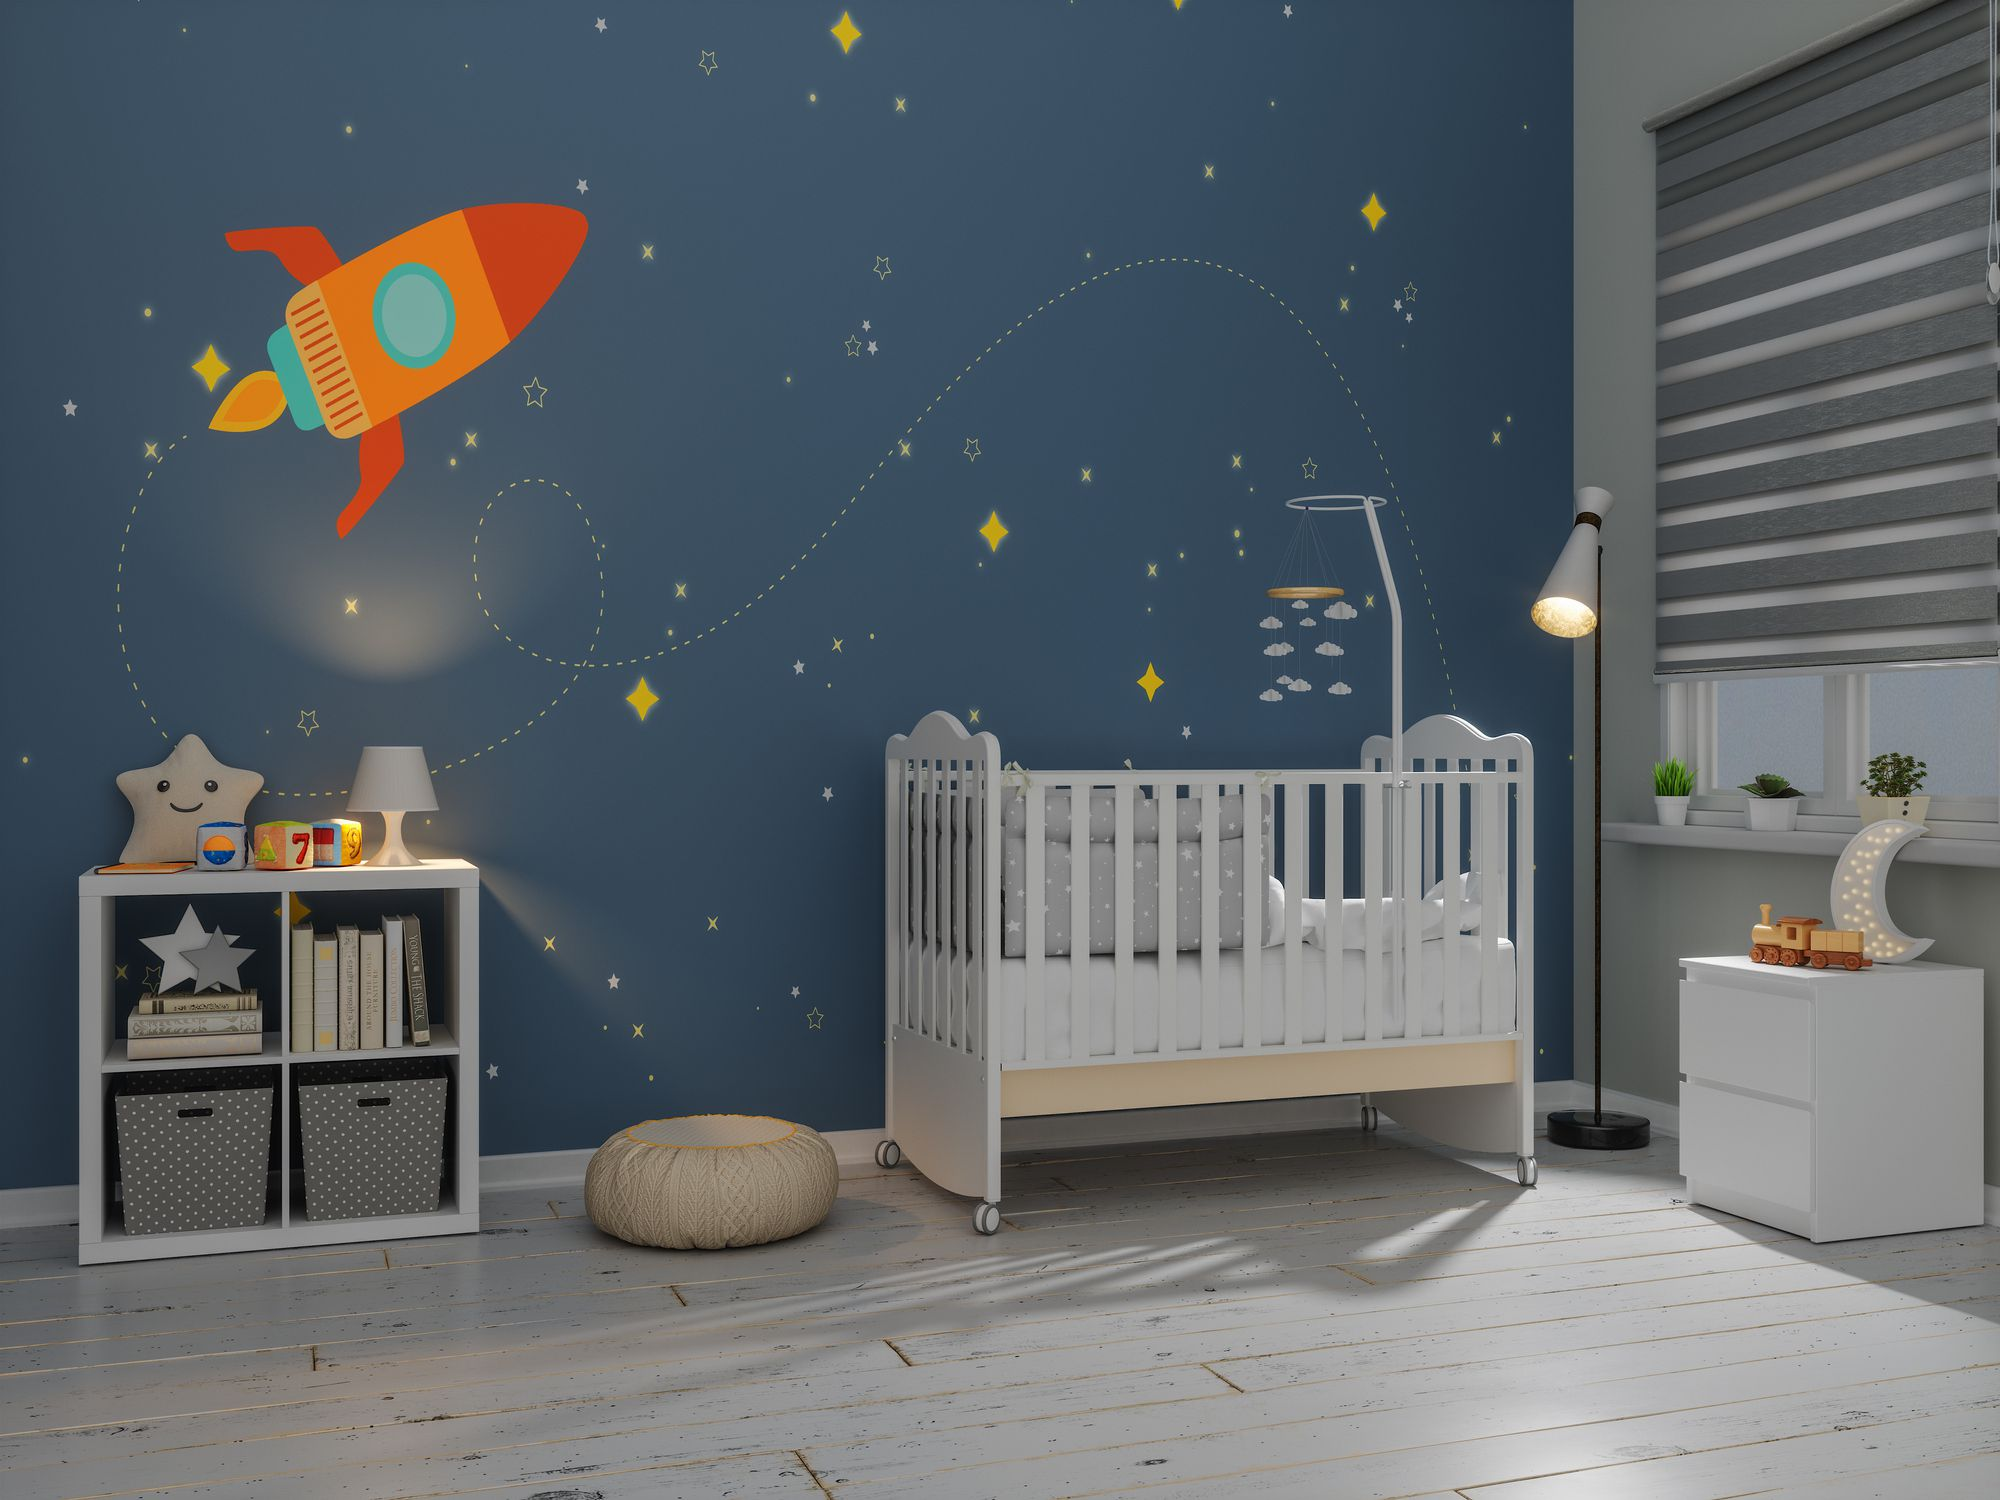 8 Space-Themed Rooms for Kids